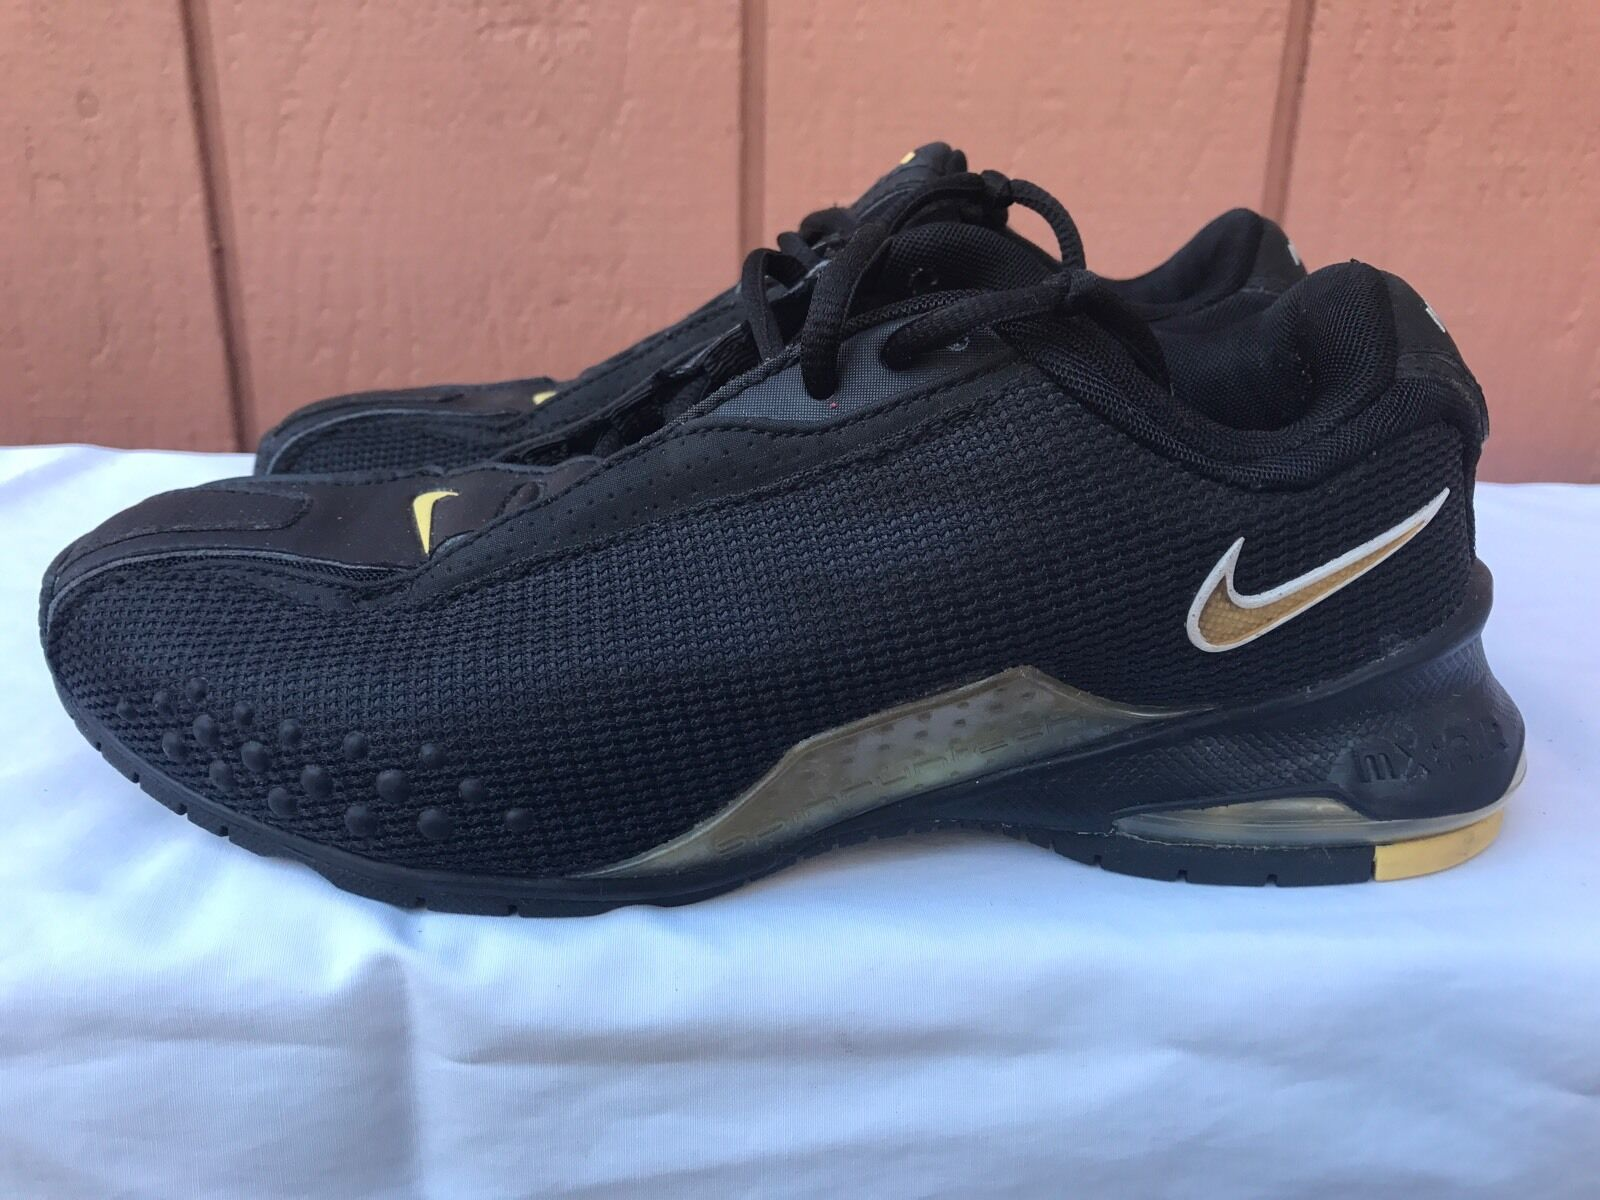 RARE NIKE MX AIR 2003 SPIN RUN TECH US 6 BLACK TRAINERS SNEAKERS SHOES